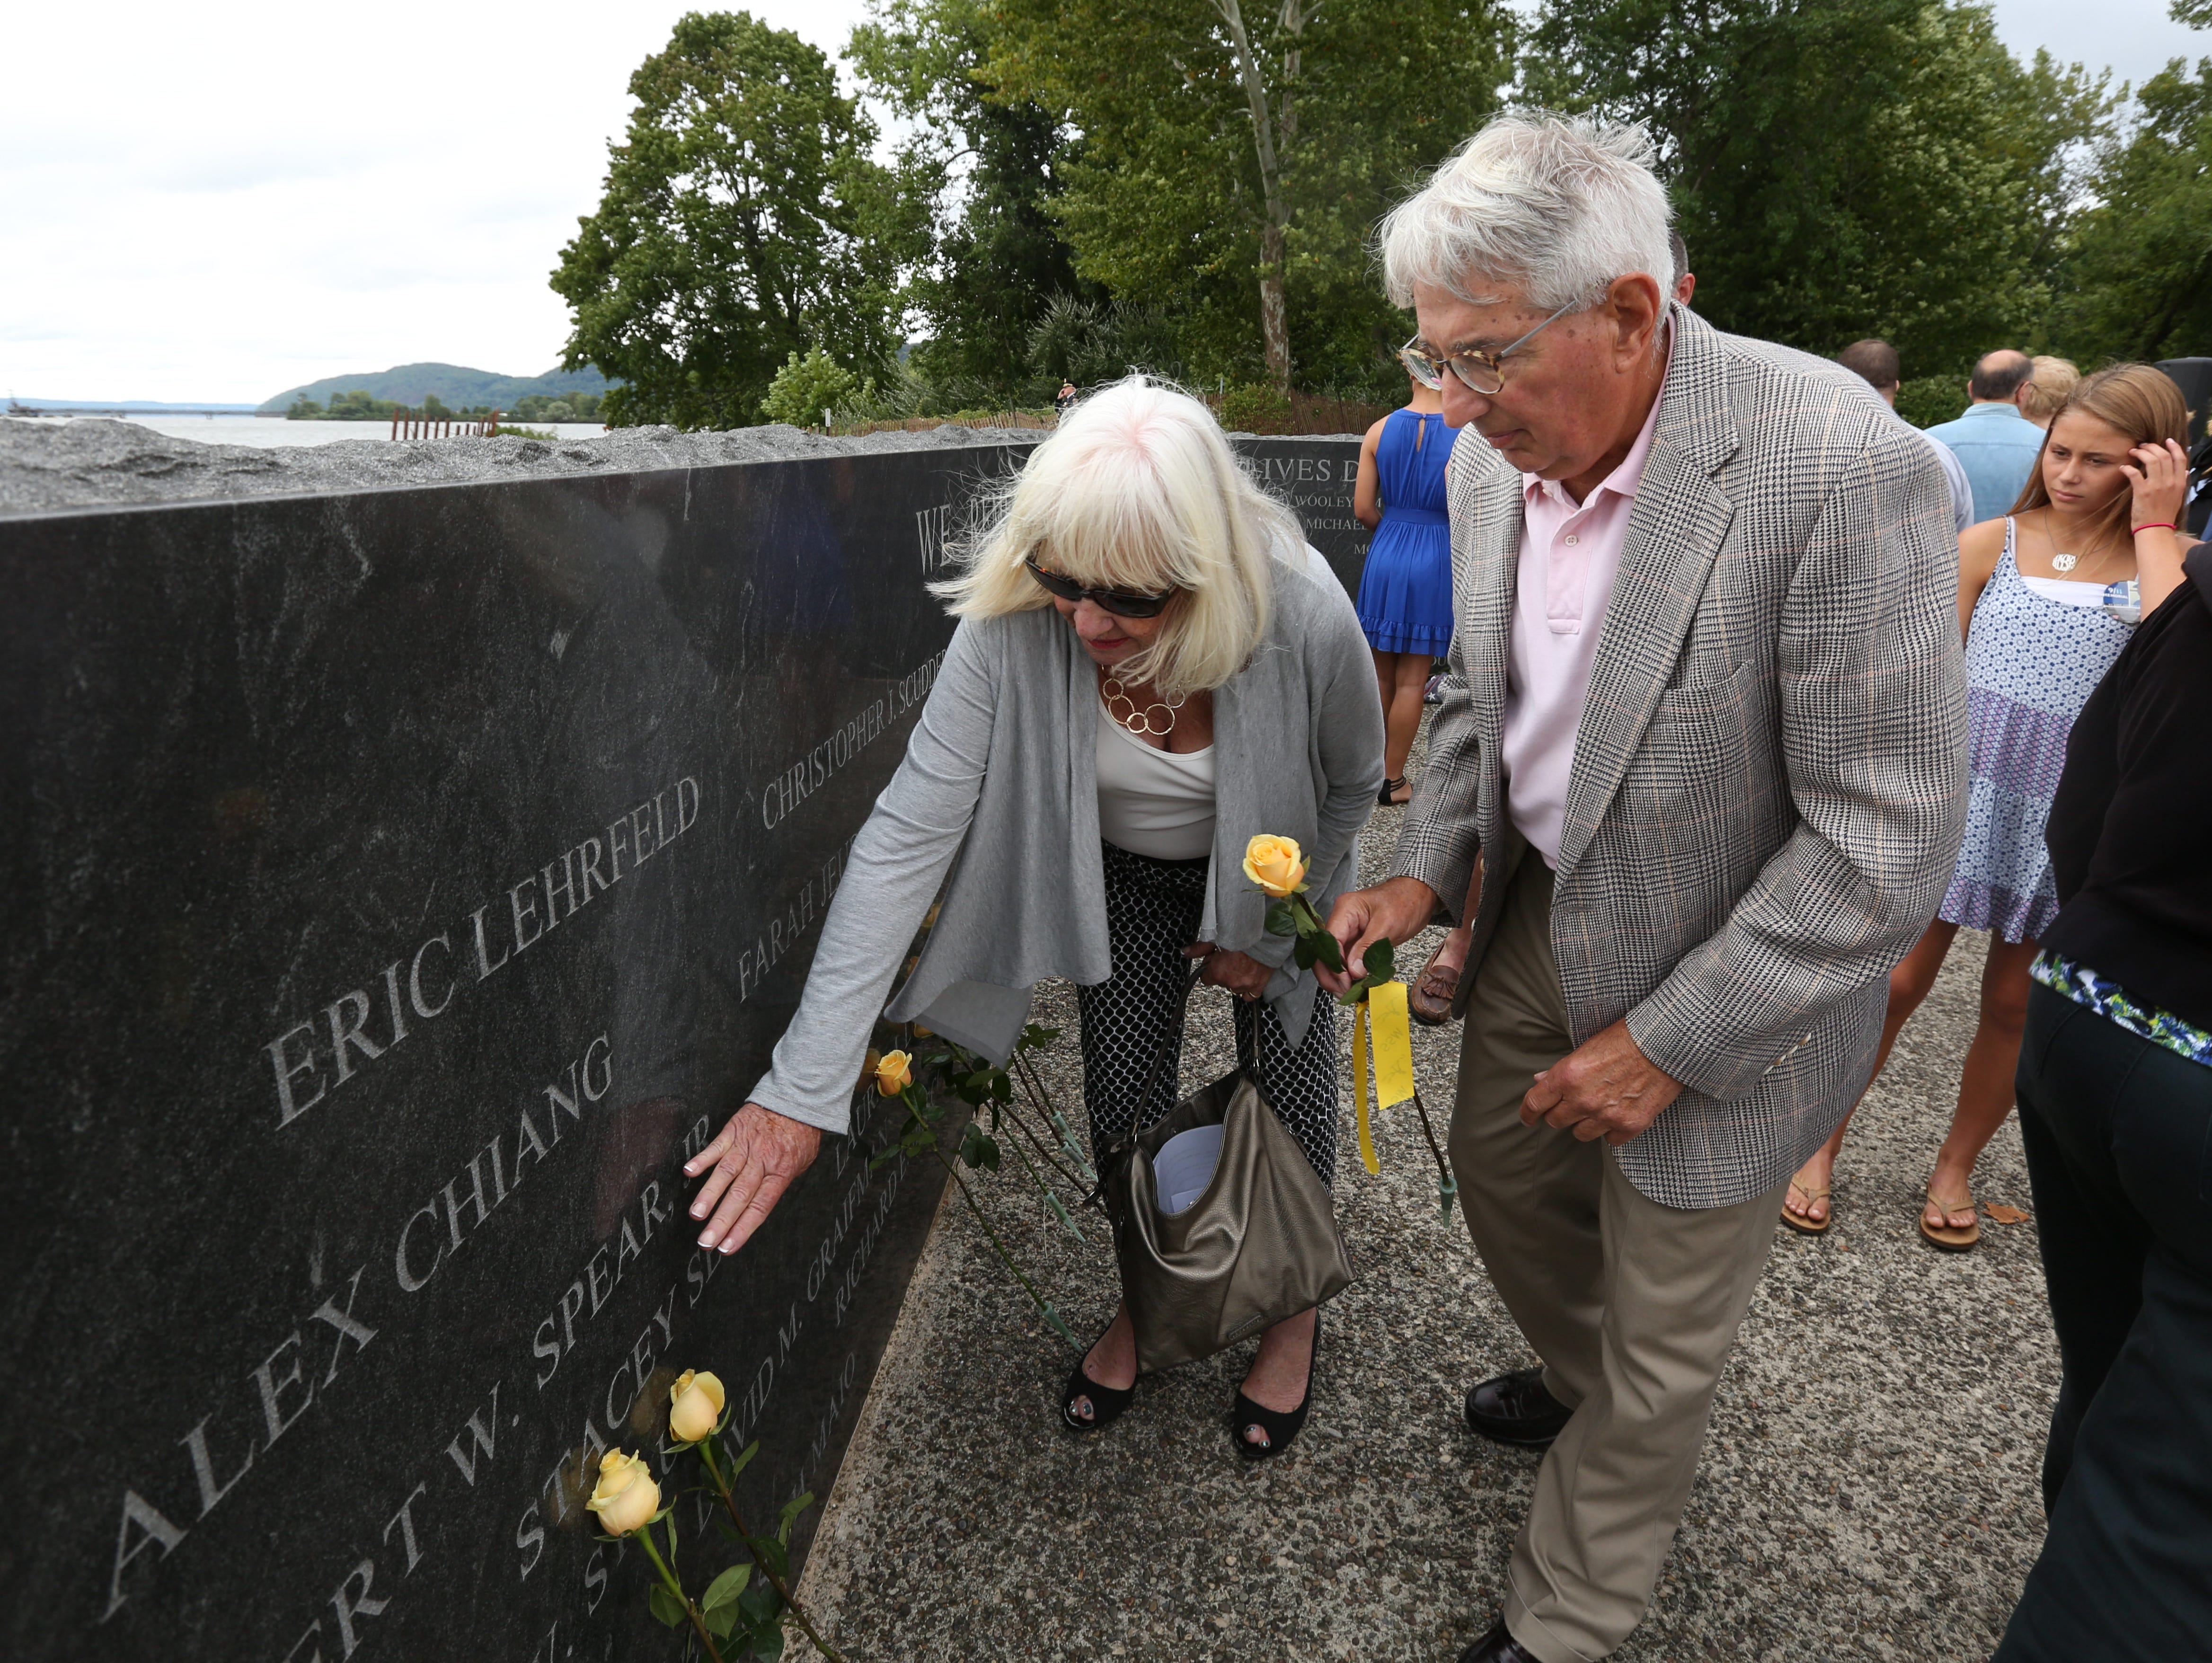 Fran and Semo Sennas place a flower in memory of their daughter, Stacey Sennas McGowan during the Rockland County Sept. 11 Memorial Service in Haverstraw Bay Park.